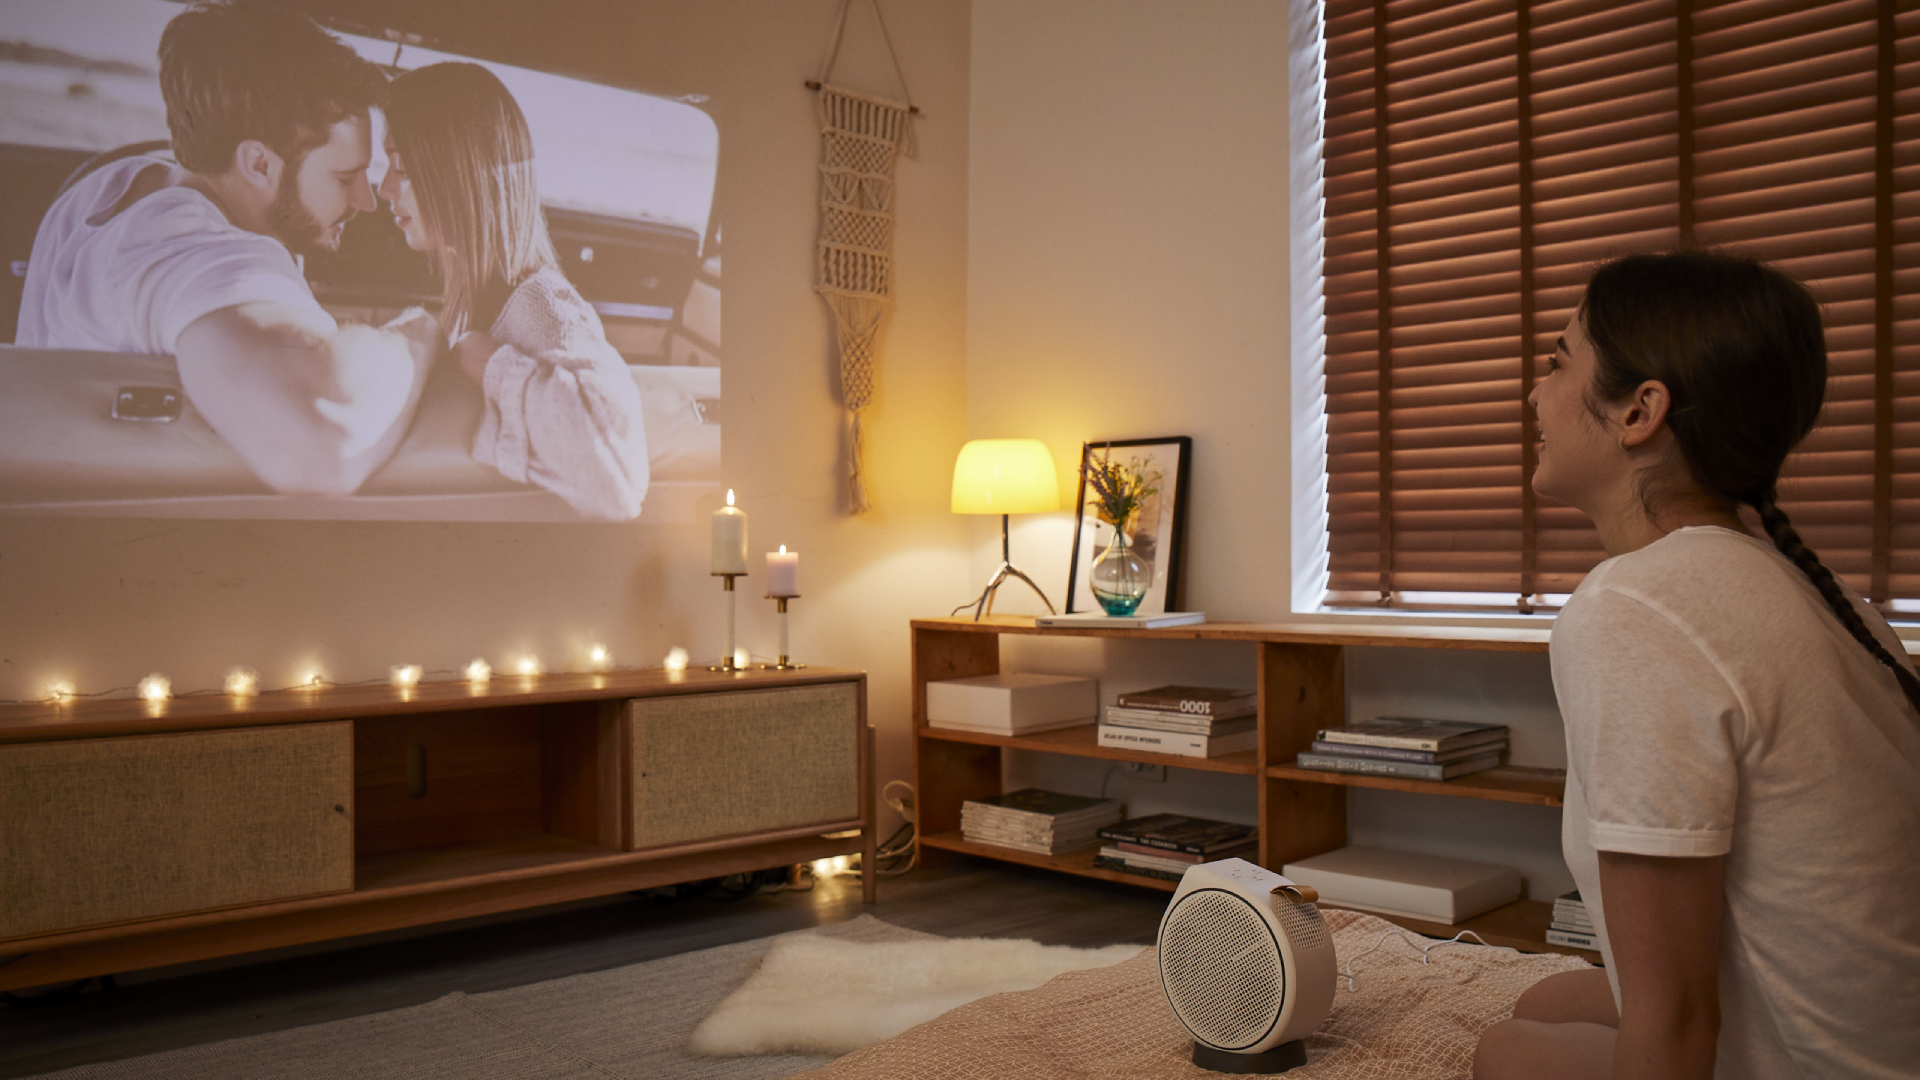 The BenQ GV30 being used in a home theater environment